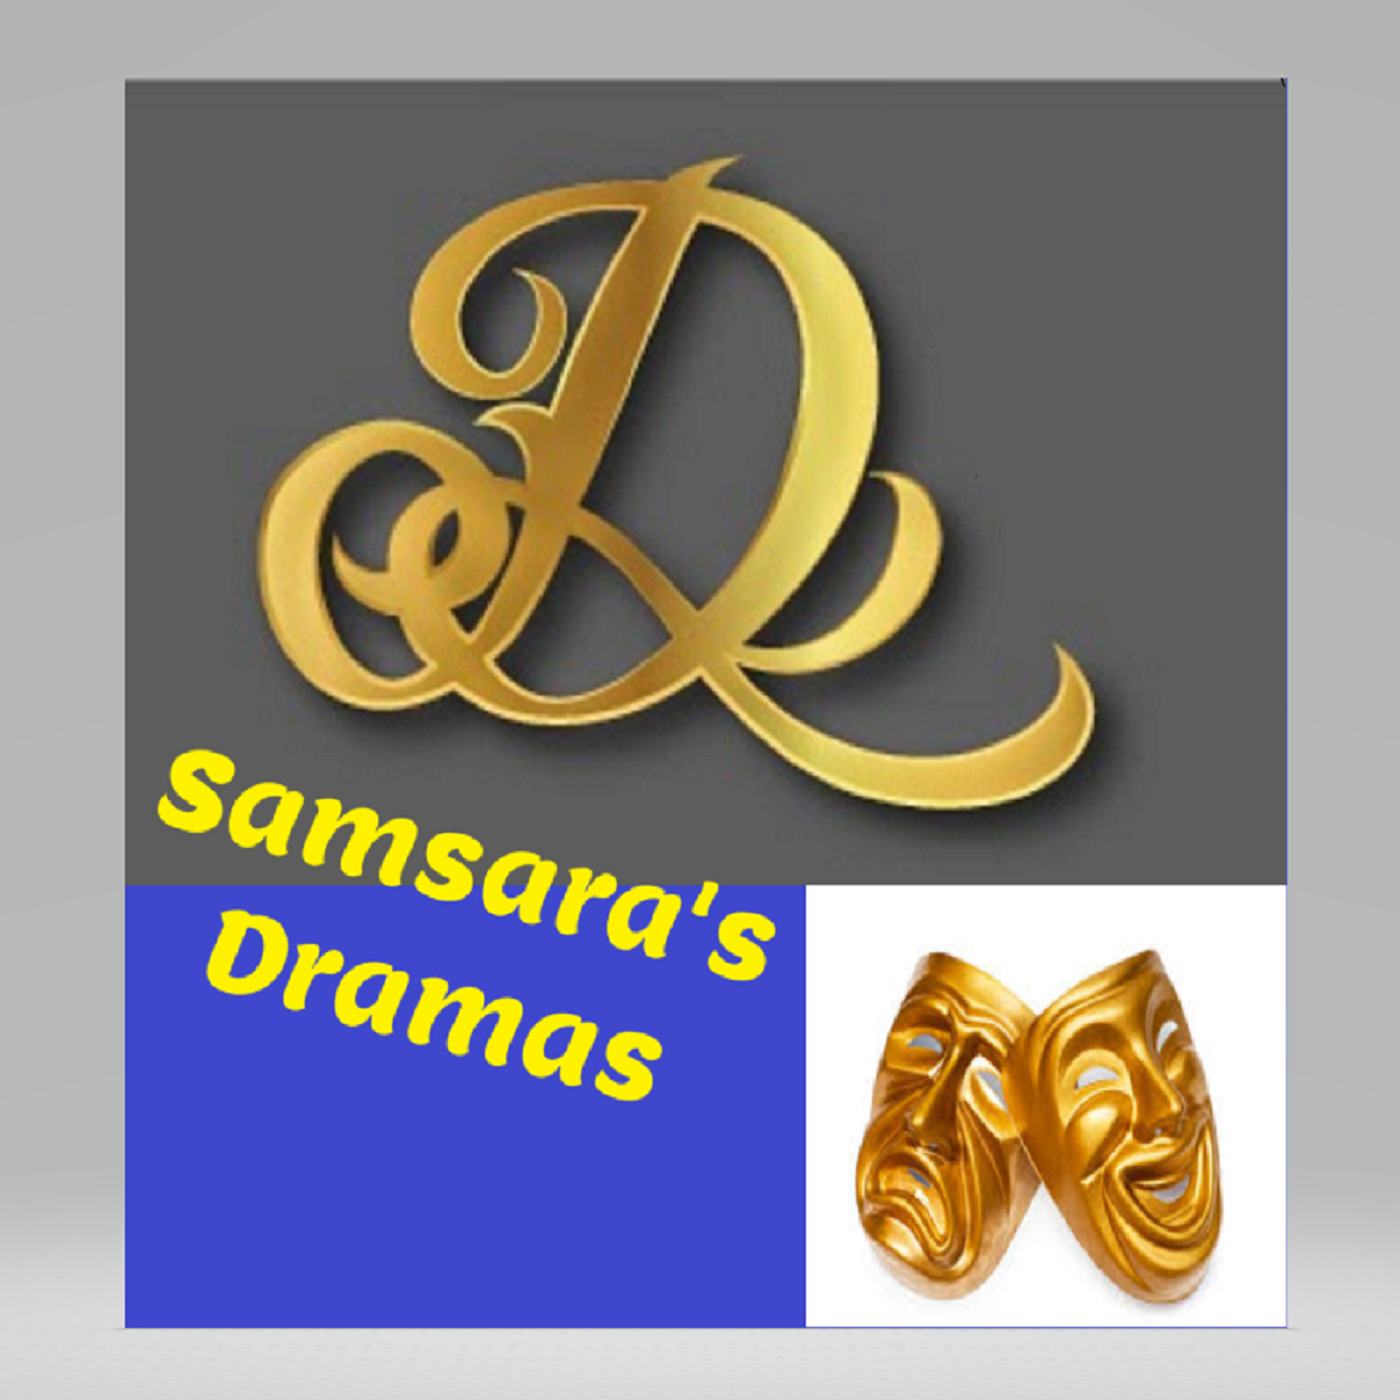 SAMSARA'S DRAMAS - straight from her pen to your ears!